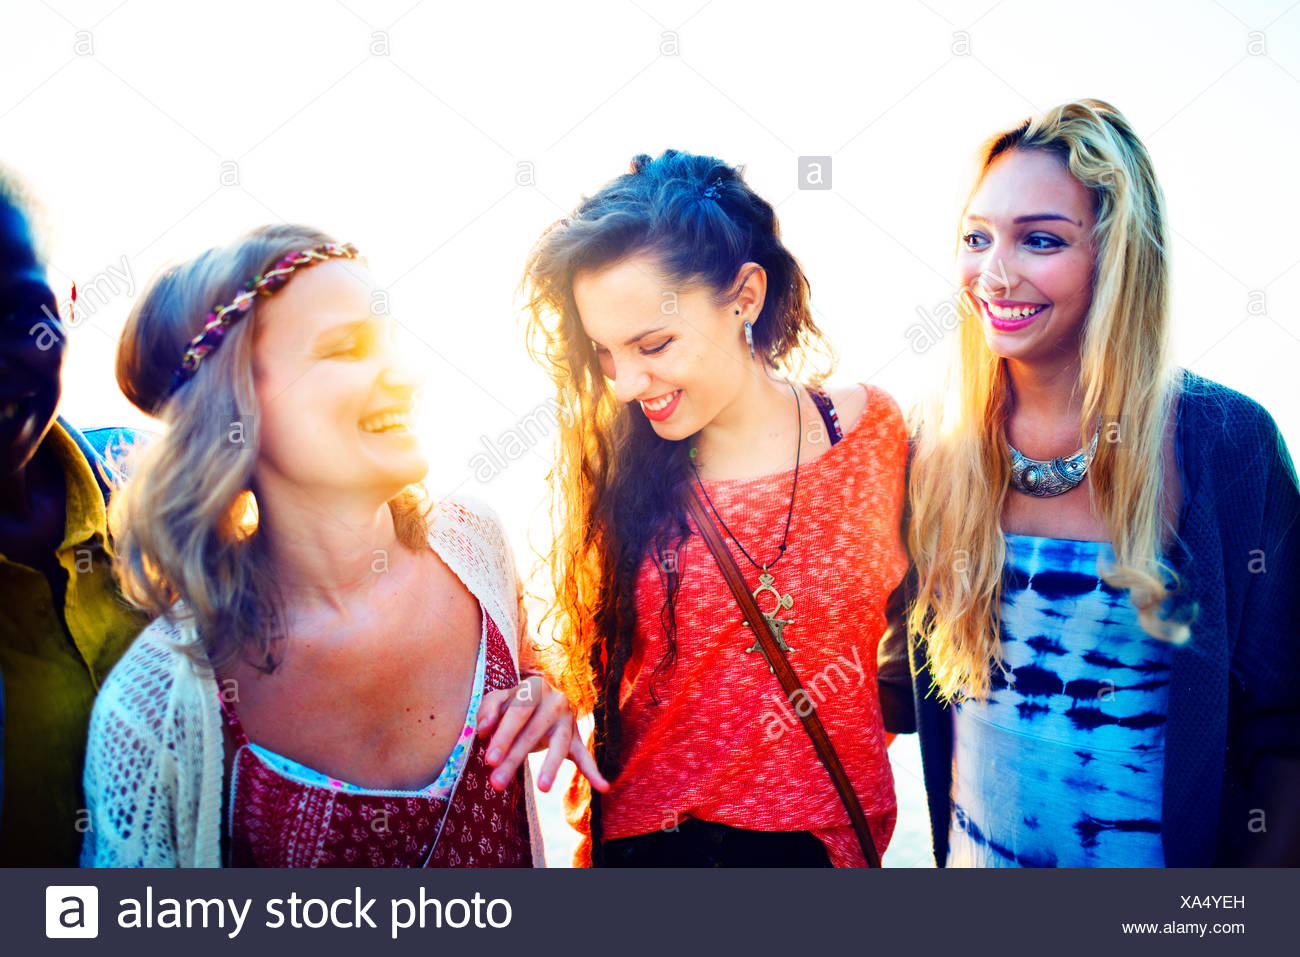 Women Friends Bonding Happiness Summer Concept - Stock Image